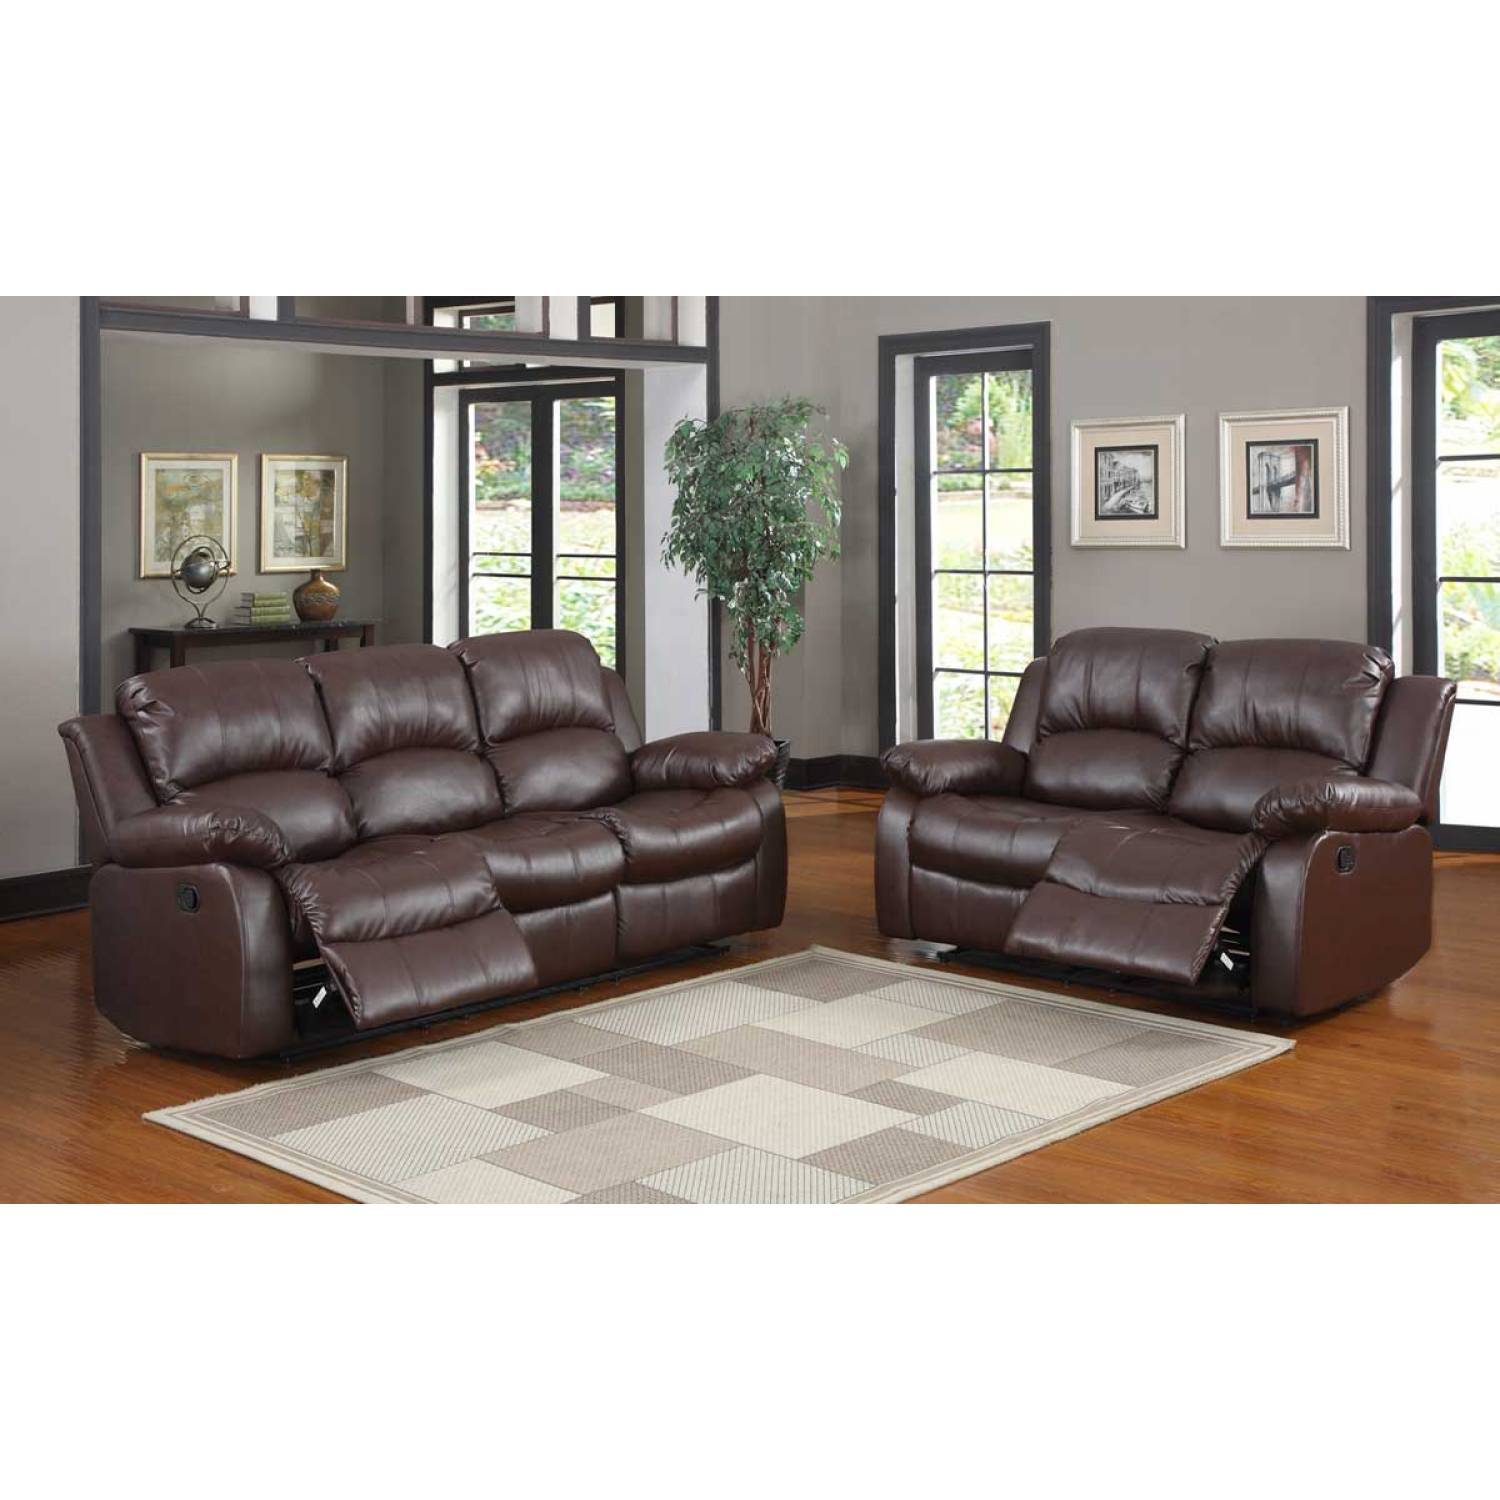 bonded leather reclining sofa set accent pillows for brown 2pc cranley